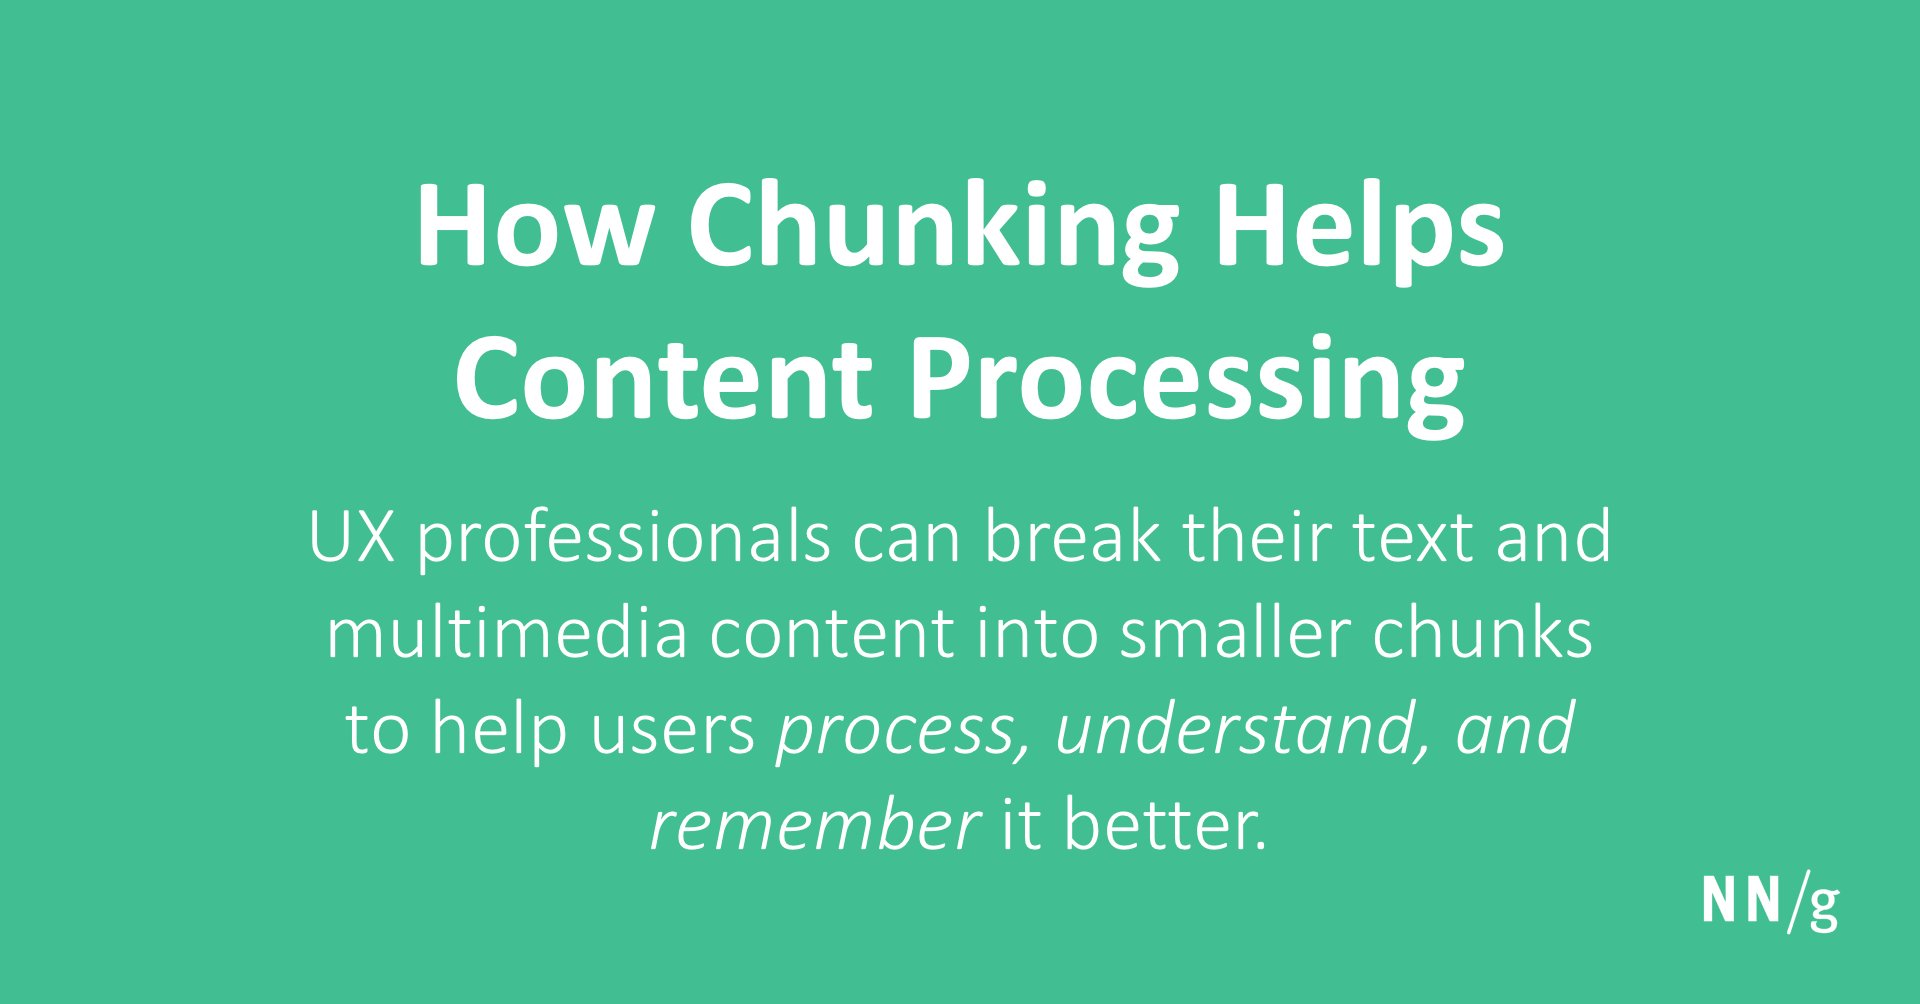 How Chunking Helps Content Processing